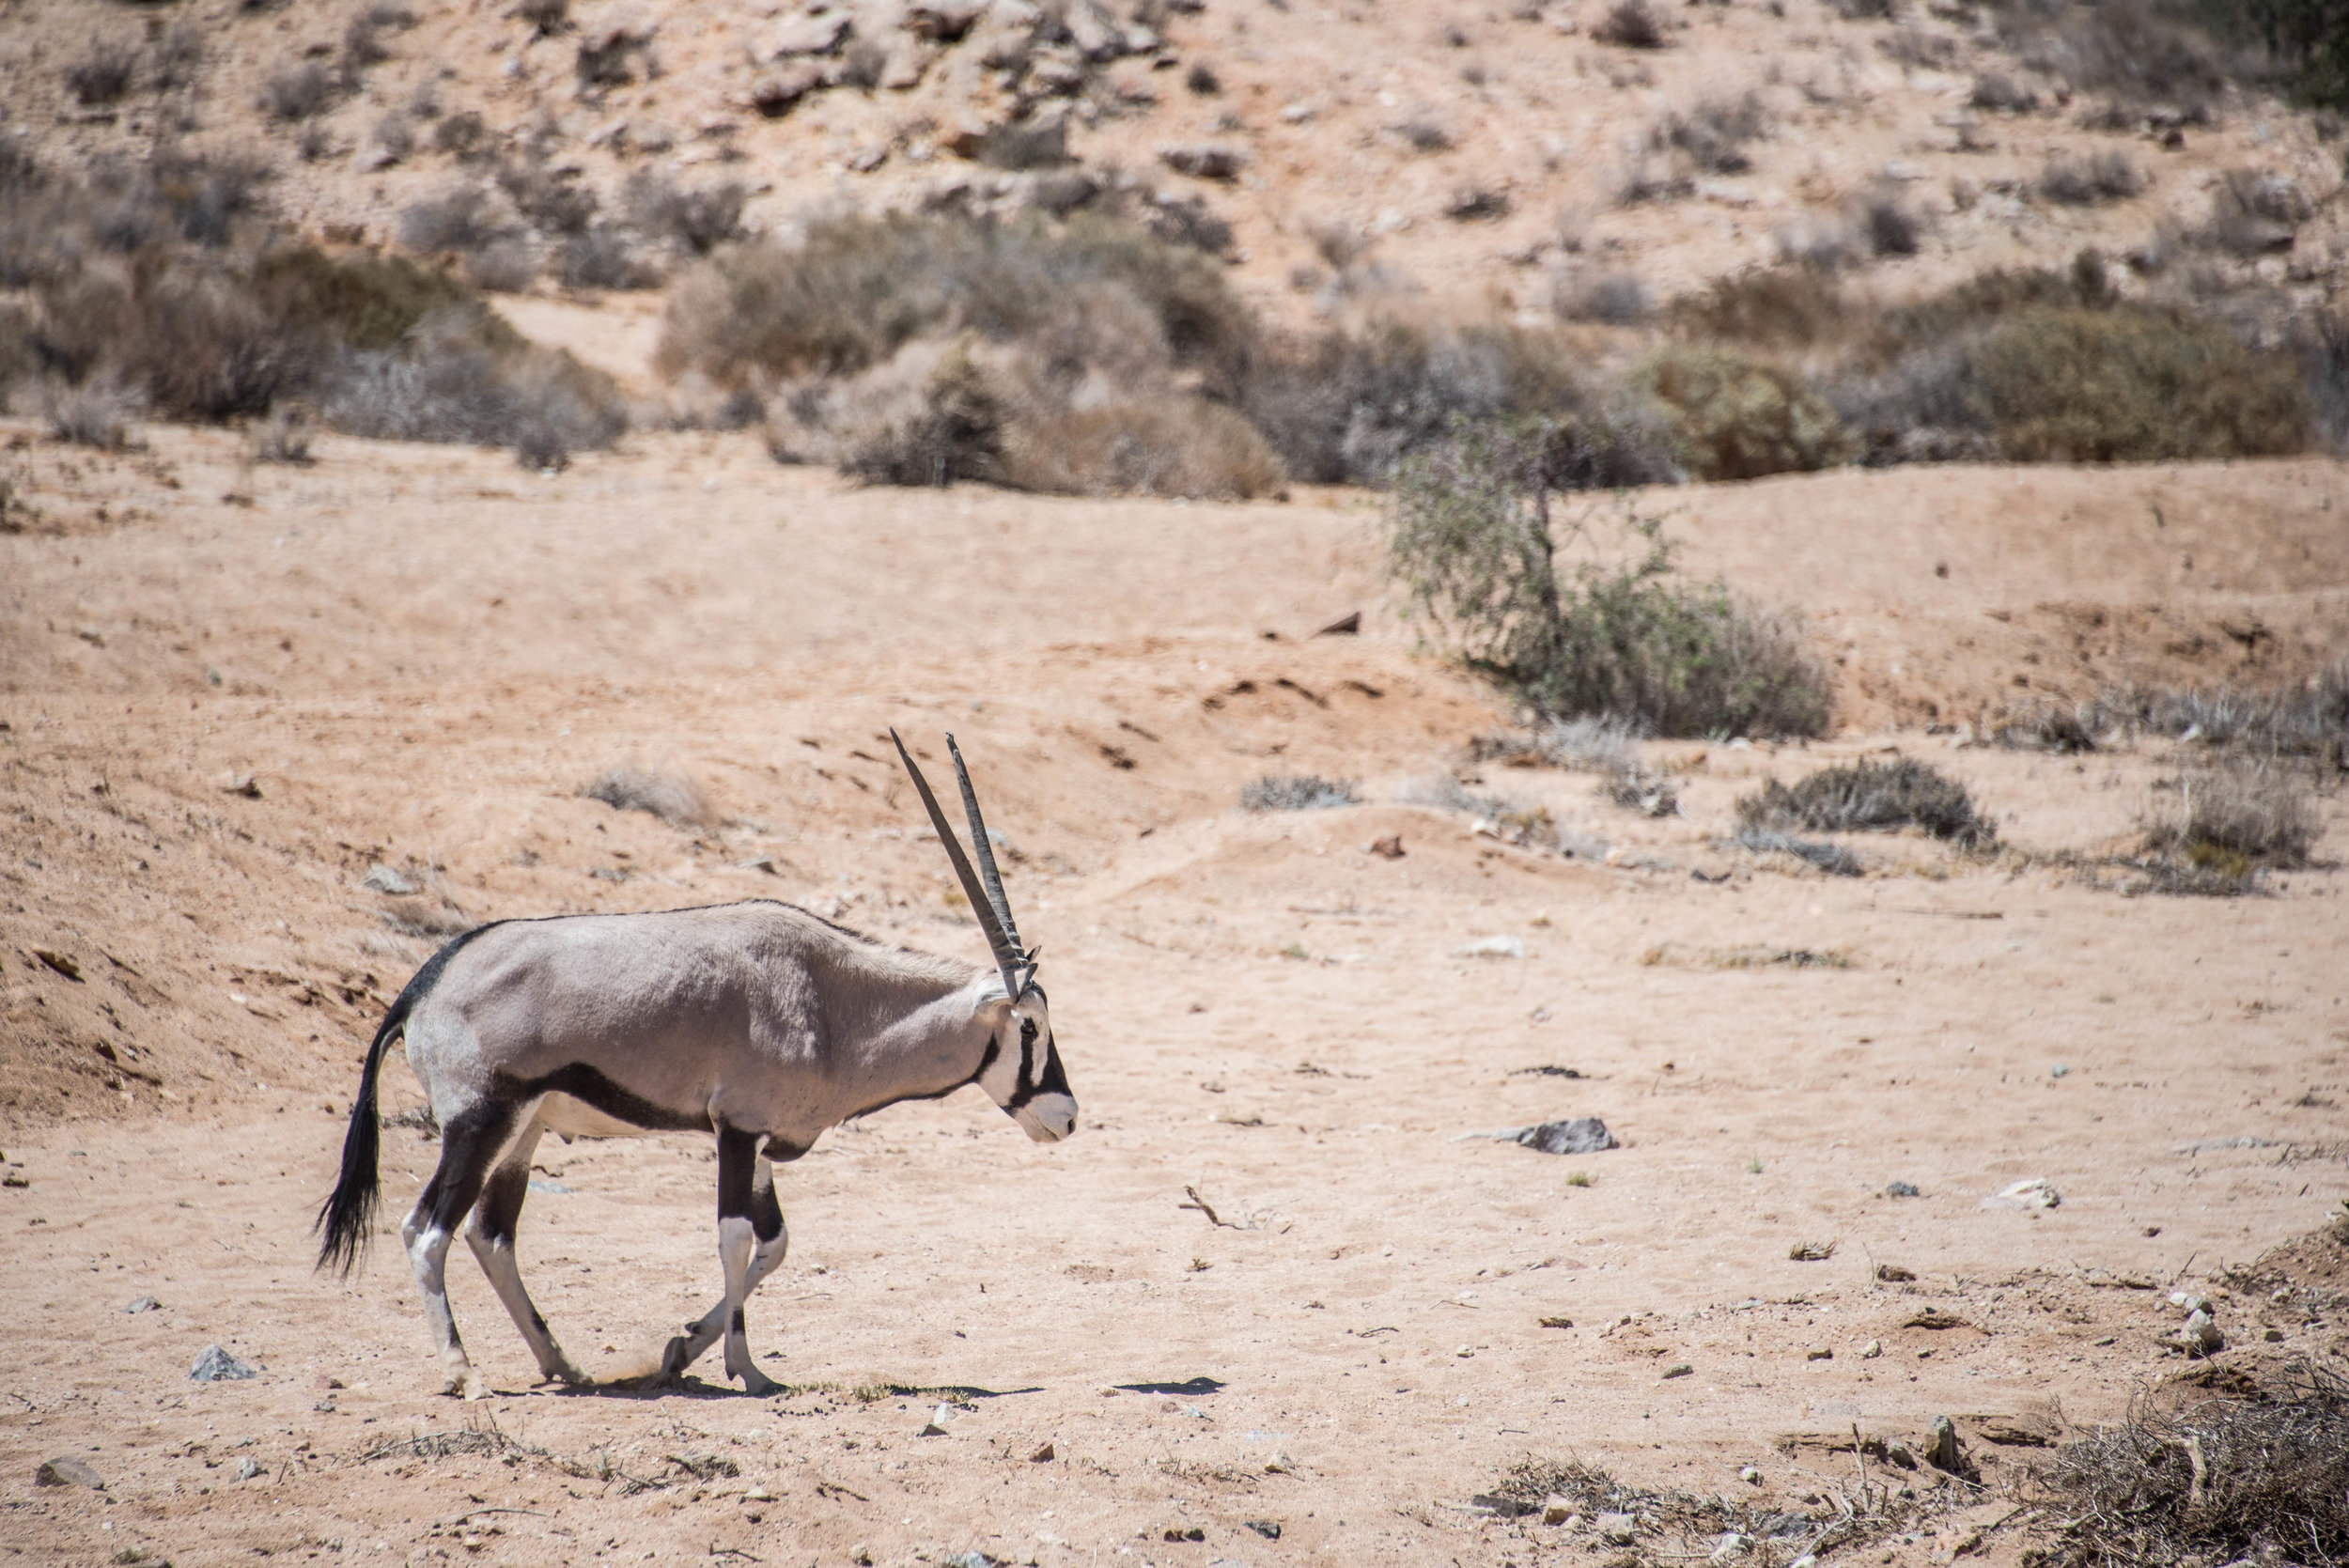 In Namibia, home to the world's oldest desert, gemsbok like this one are a common source of food. Eating vegan was possible, but limited to big plates of french fries, tomato sandwiches, and pots of rice.